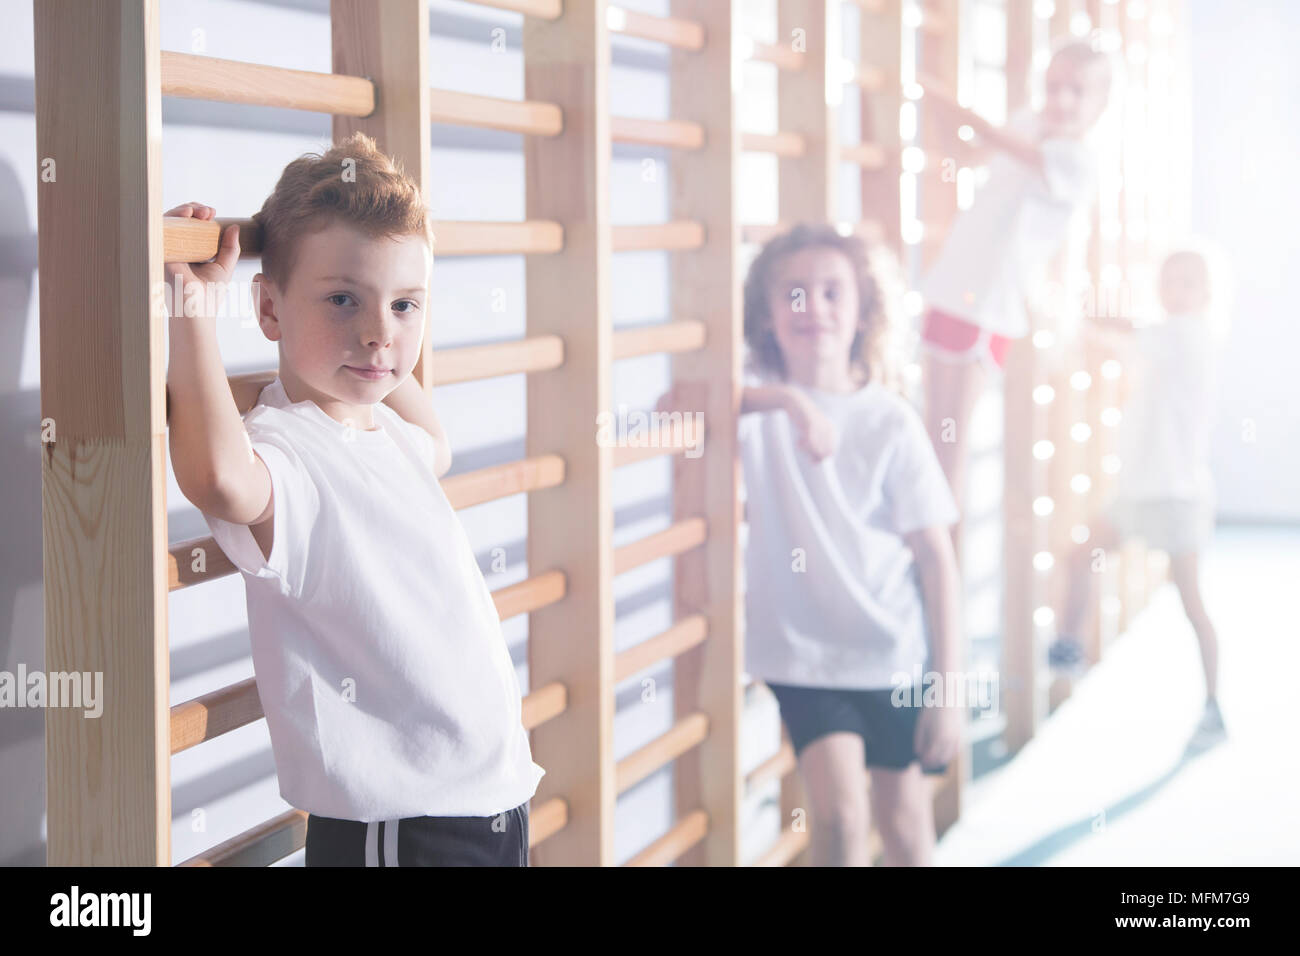 Young kids working out with wall bars at a school gym - Stock Image